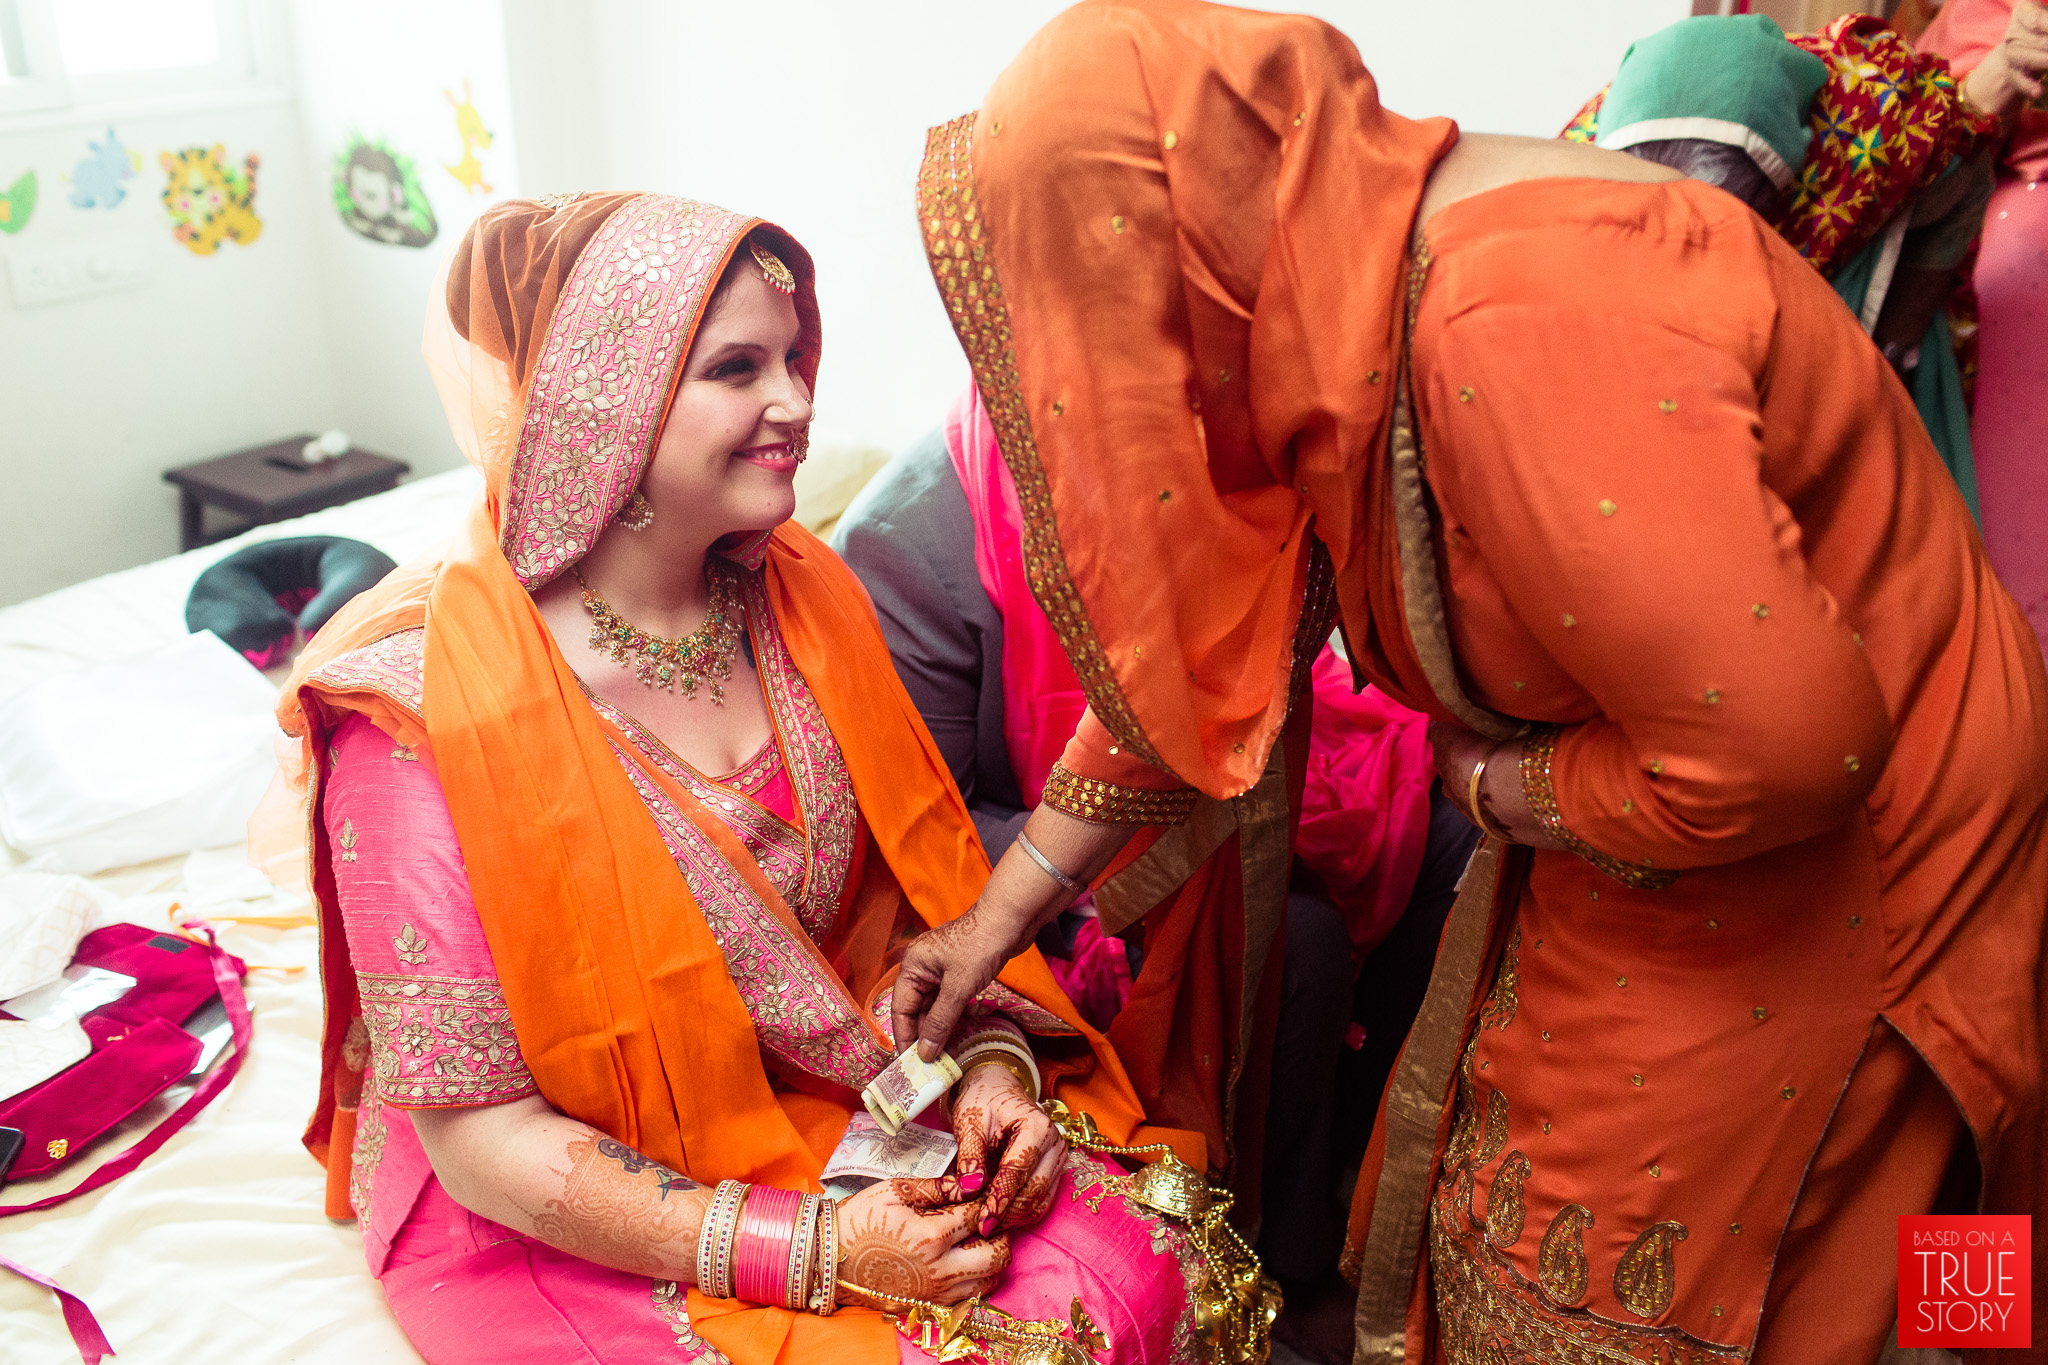 candid-photography-sikh-wedding-bangalore-0028.jpg